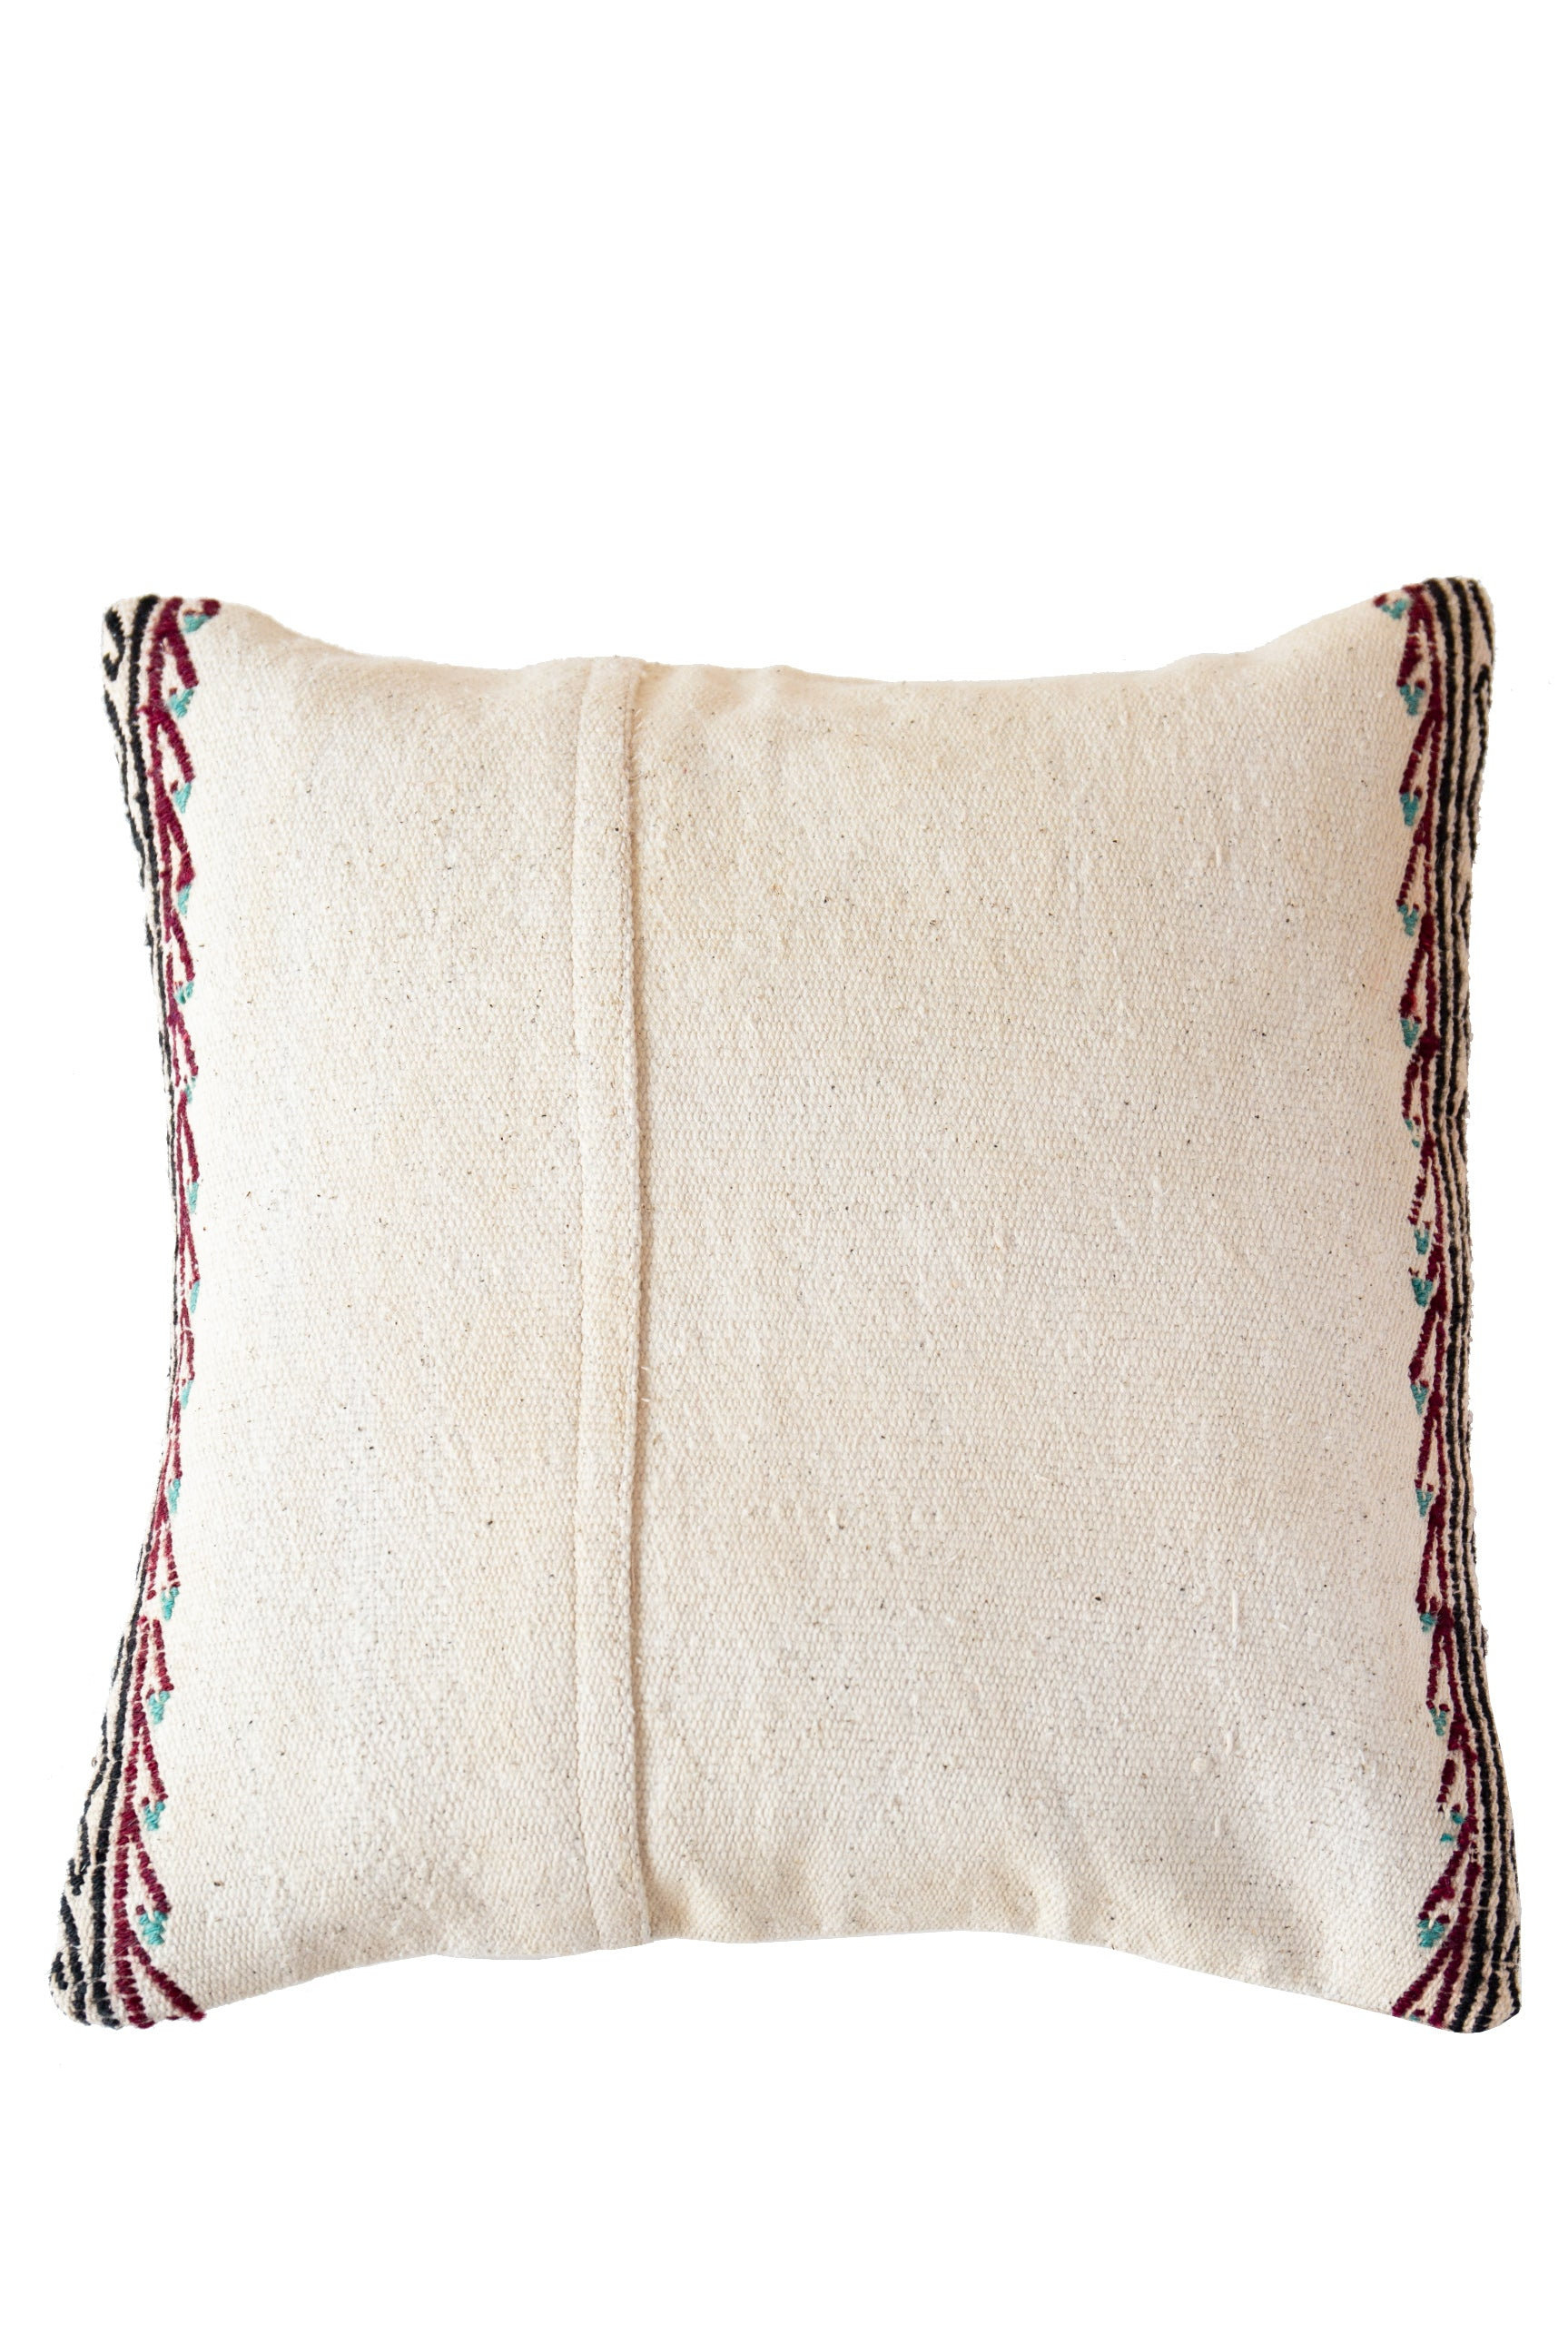 Coconut Turkish Kilim Cushion